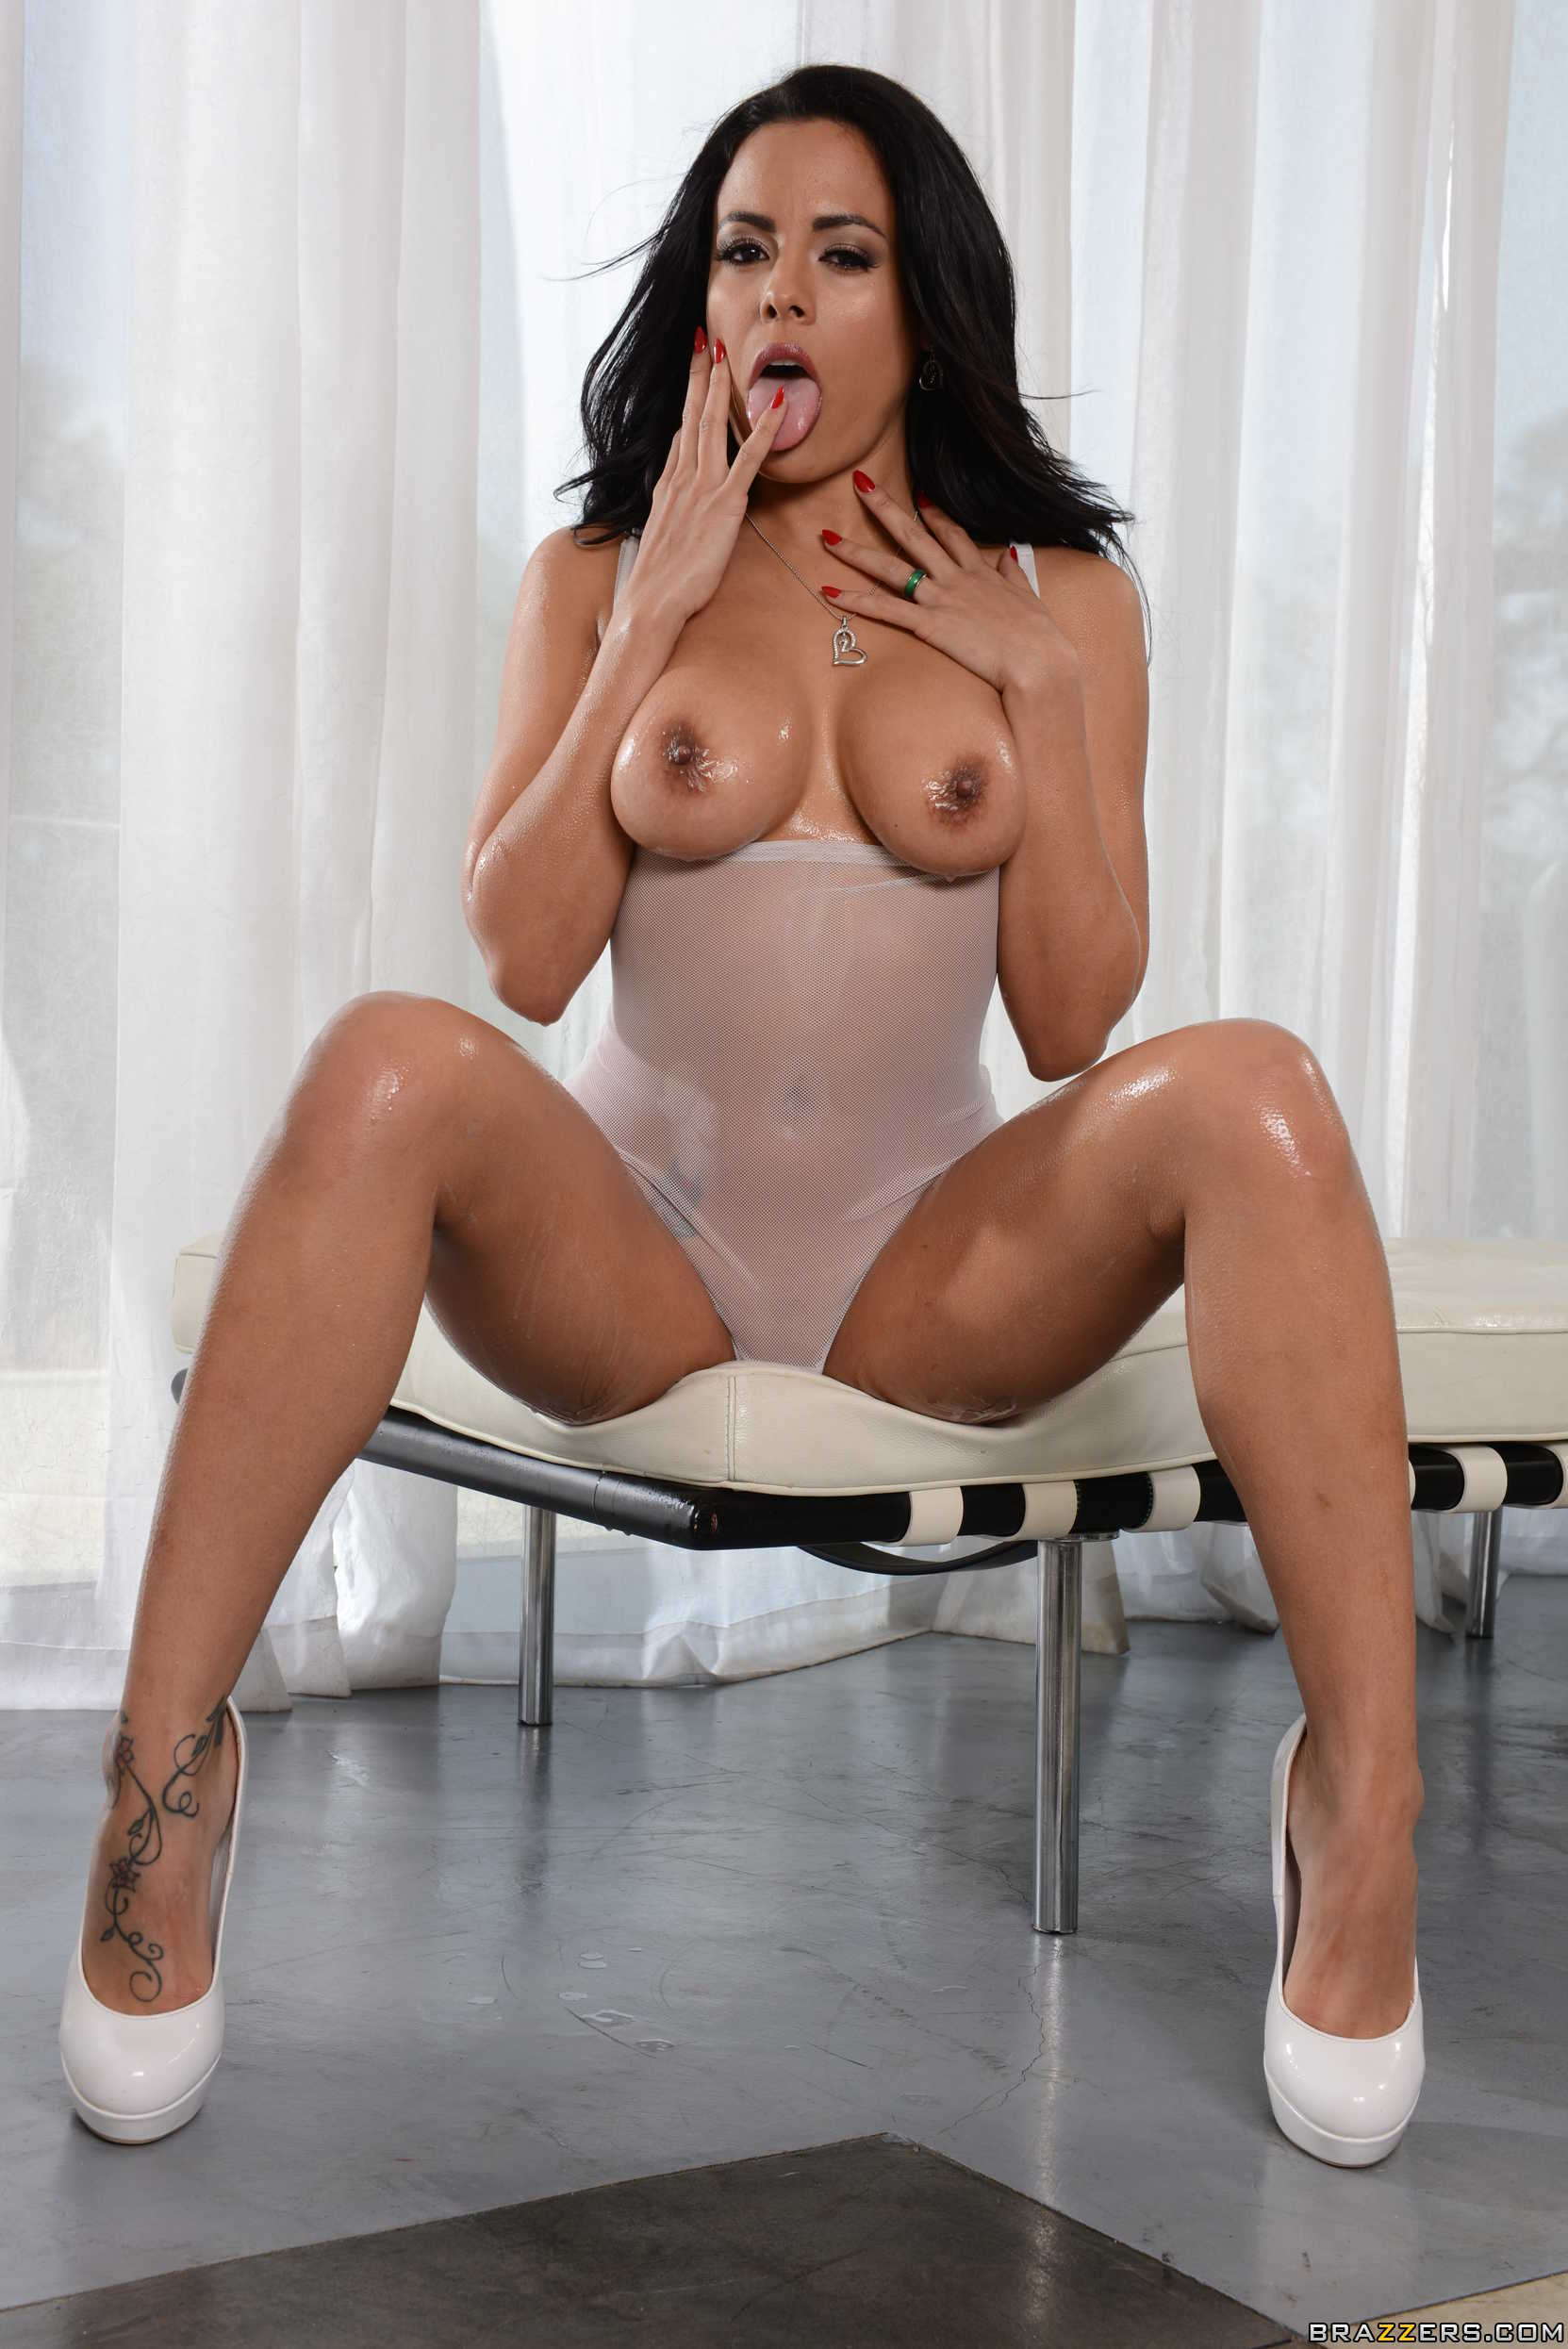 Adrianna luna housewife 1 on 1 4